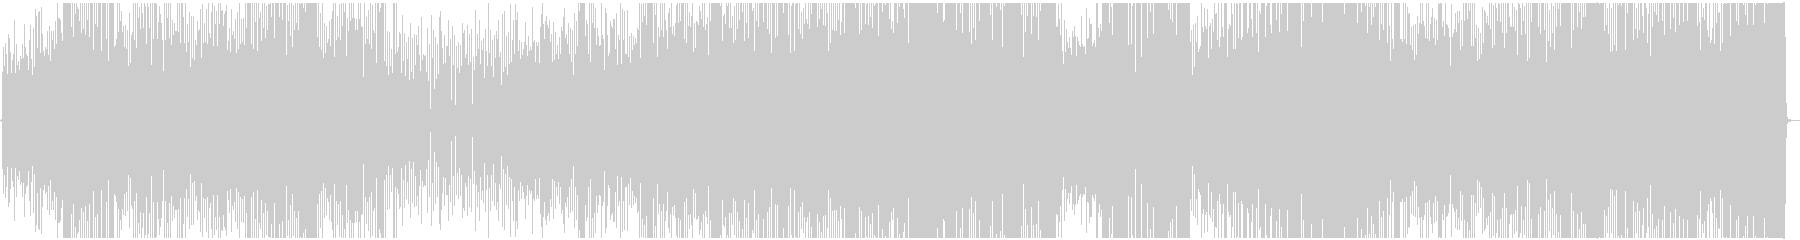 Danceable Latin numbers's unreproduced waveform